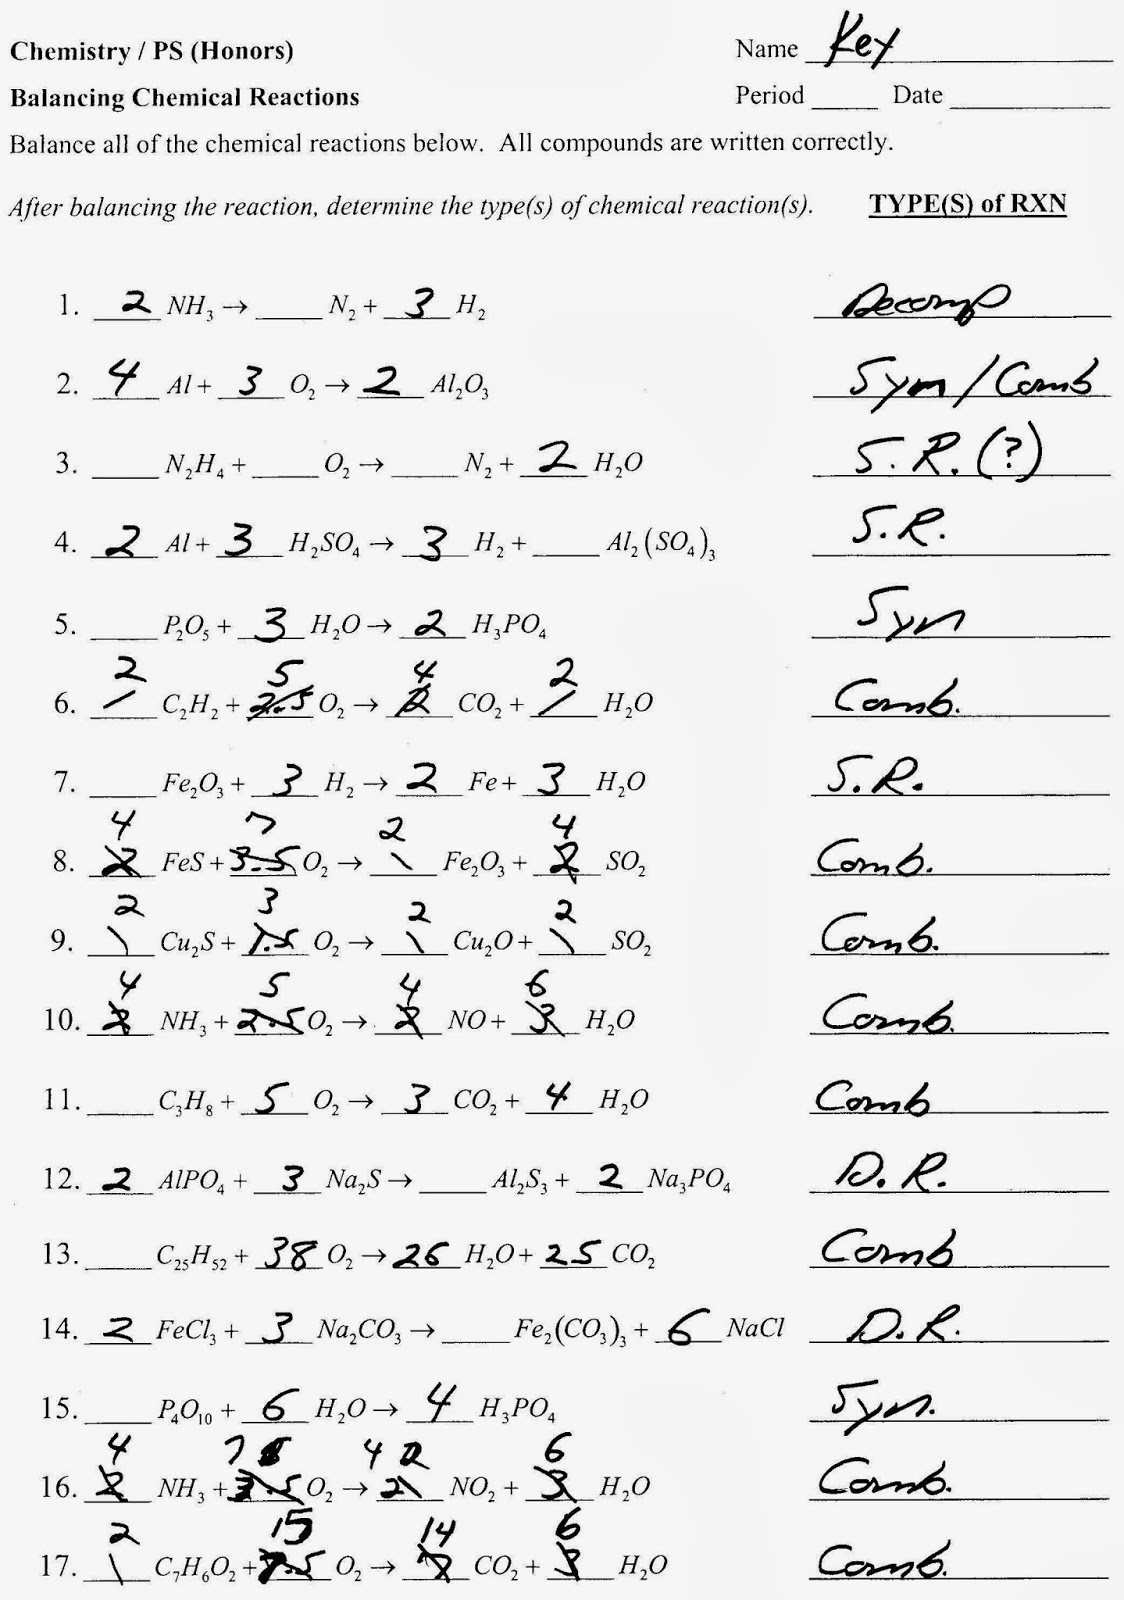 Aldiablosus  Wonderful Balancing Chemical Equations Worksheets Balancing Chemical  With Interesting Balancing Chemical Equations Worksheet Answer Key On Chemistry Double With Enchanting Maths Worksheet For Kindergarten Printables Also Adjectives English Worksheets In Addition Maths Worksheets Uk And Butterfly Lifecycle Worksheet As Well As Fraction Worksheets Year  Additionally Fractions Decimals And Percentages Worksheet From Letstalkhiphopus With Aldiablosus  Interesting Balancing Chemical Equations Worksheets Balancing Chemical  With Enchanting Balancing Chemical Equations Worksheet Answer Key On Chemistry Double And Wonderful Maths Worksheet For Kindergarten Printables Also Adjectives English Worksheets In Addition Maths Worksheets Uk From Letstalkhiphopus